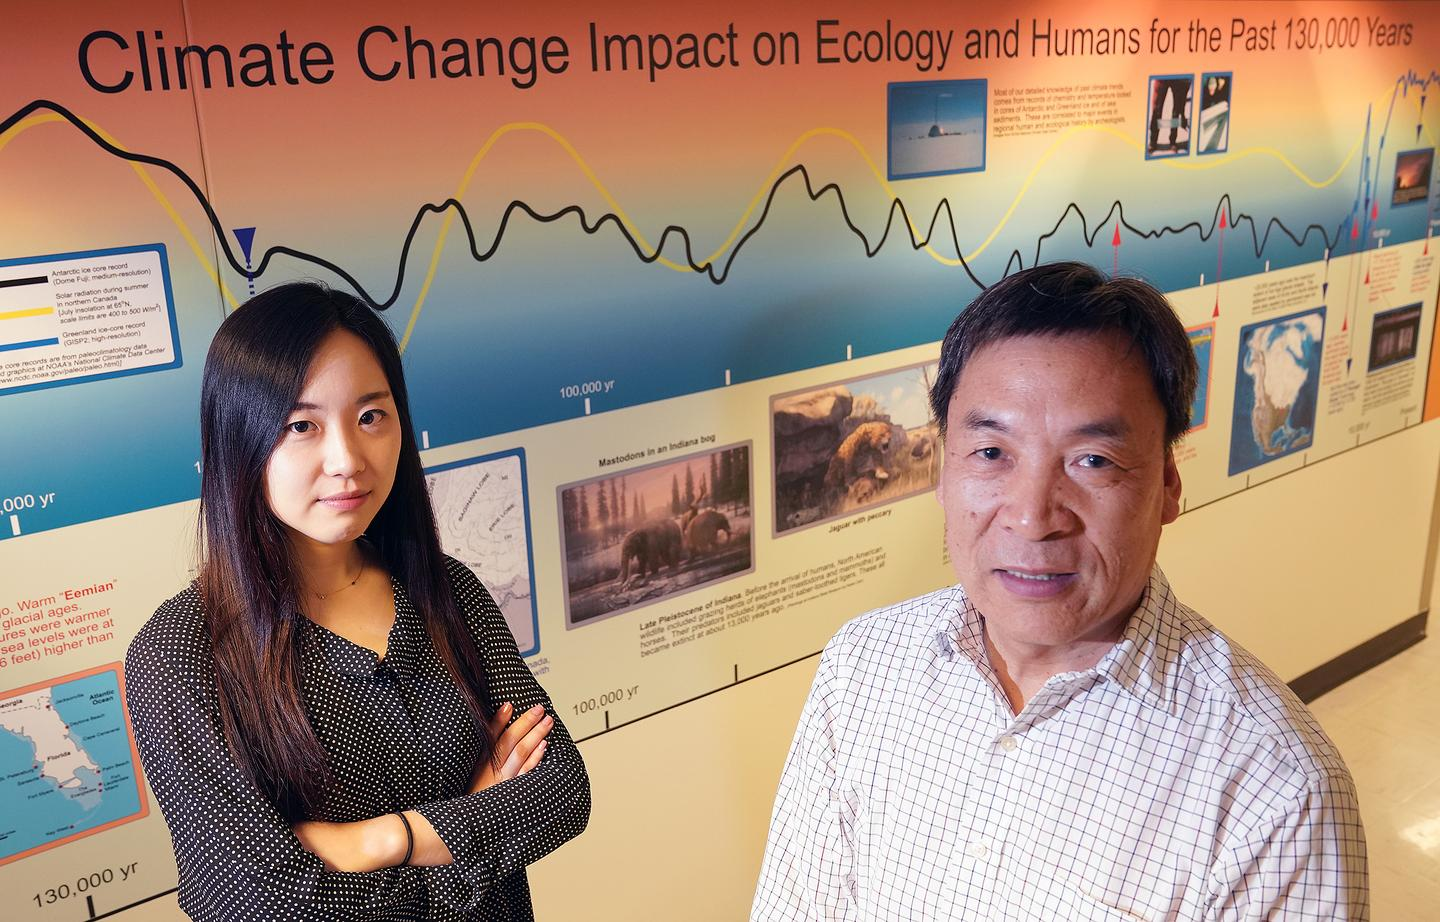 Youmi Oh (left) and Qianlai Zhuang (right), researchers on the new study